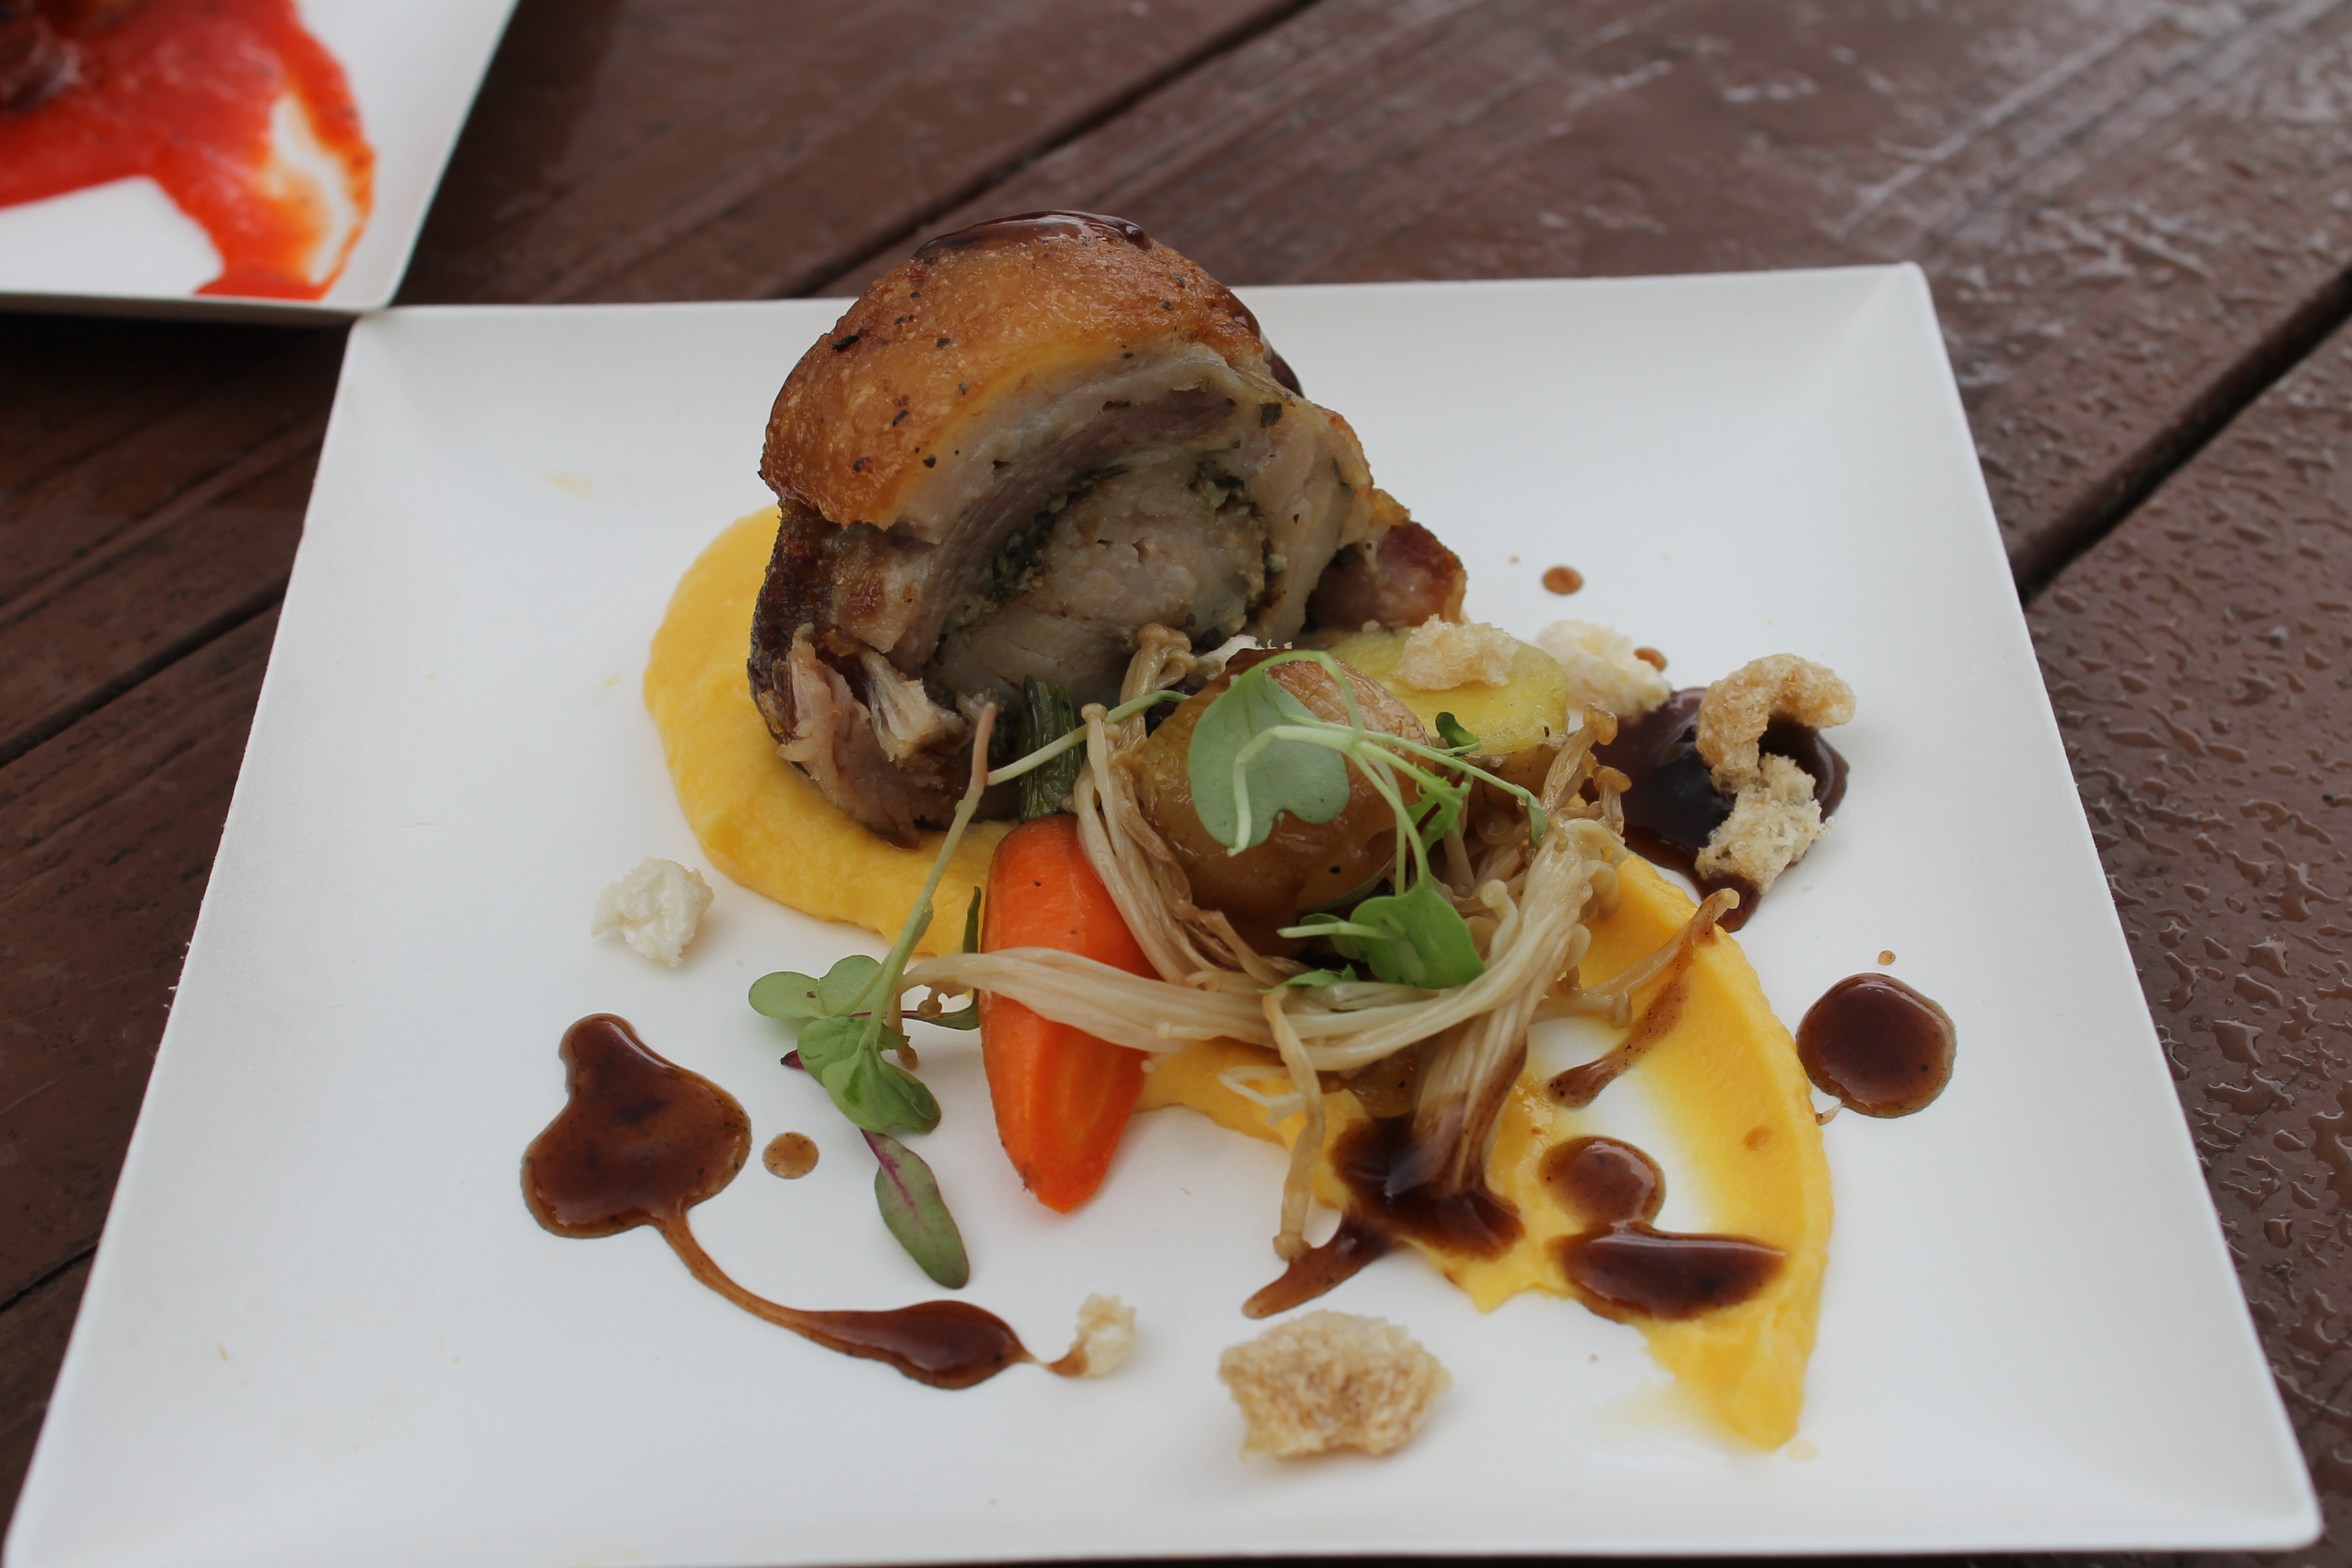 Roasted Pork Roulade with Butternut Squash Purée, Marble Potatoes and Baby Carrots with a Red Wine Sauce featuring Melissa's Produce $6.75